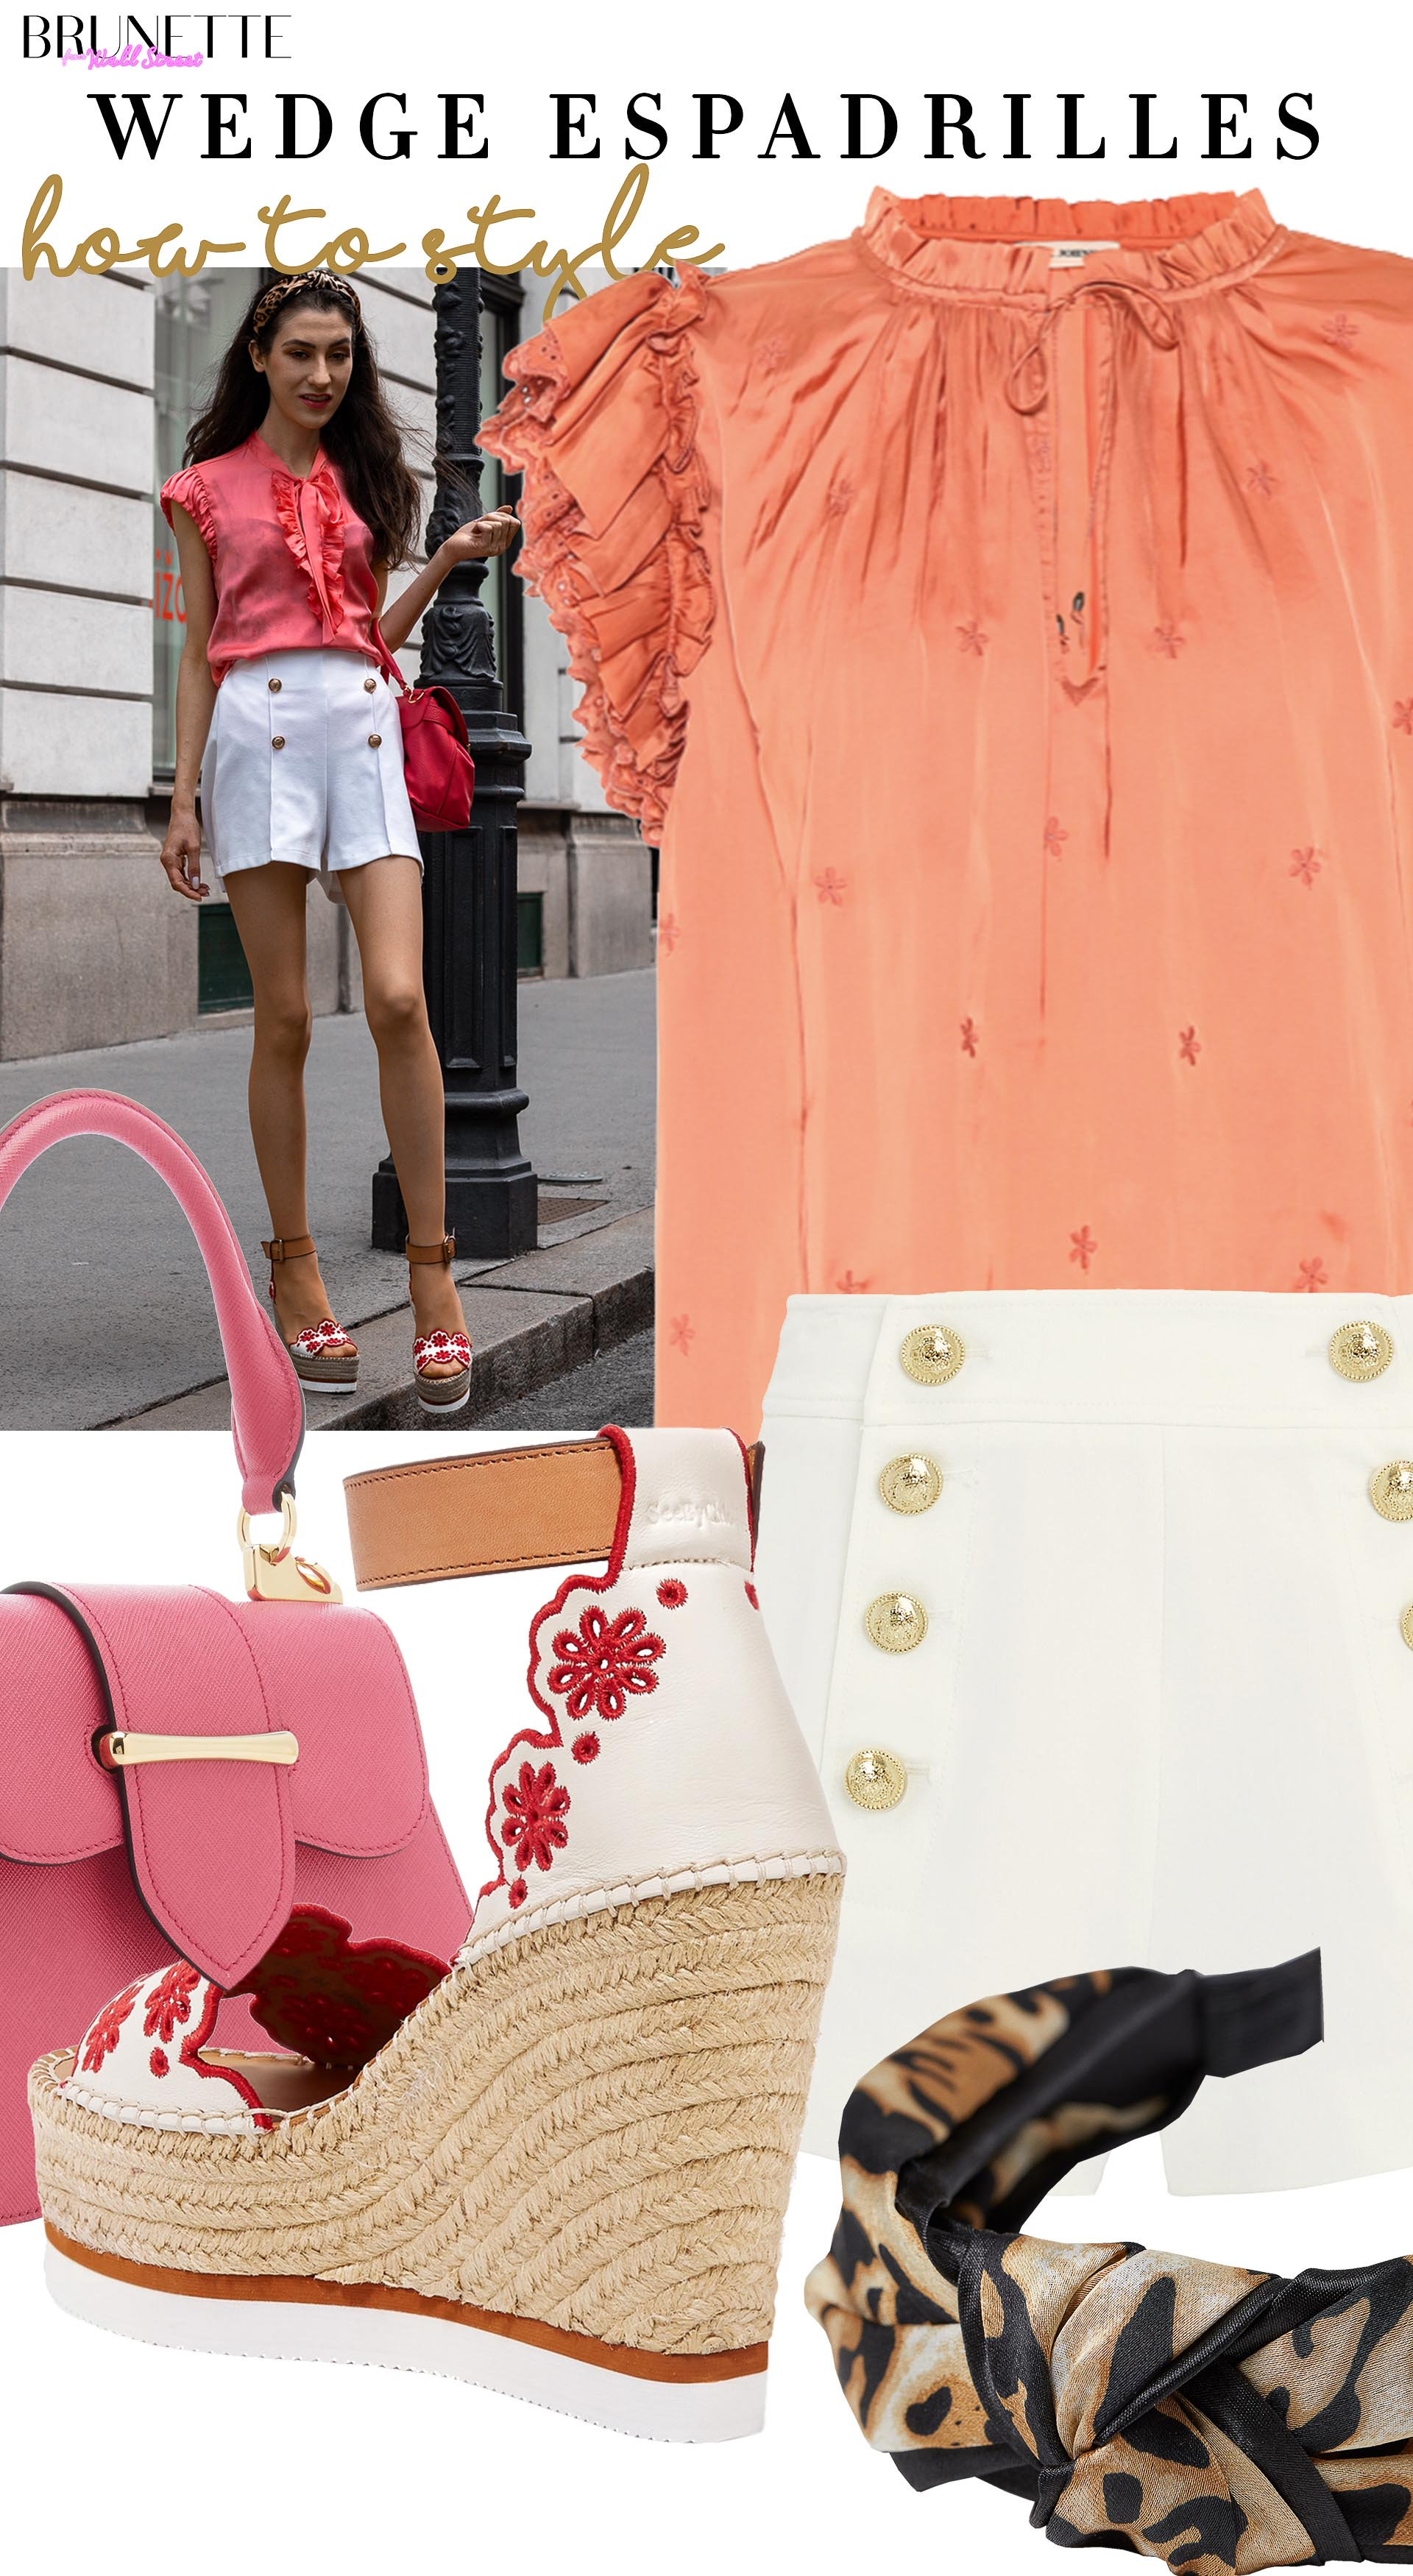 Brunette from Wall Street how to style espadrille wedhes shorts bow tie blouse prada bag leopad headband